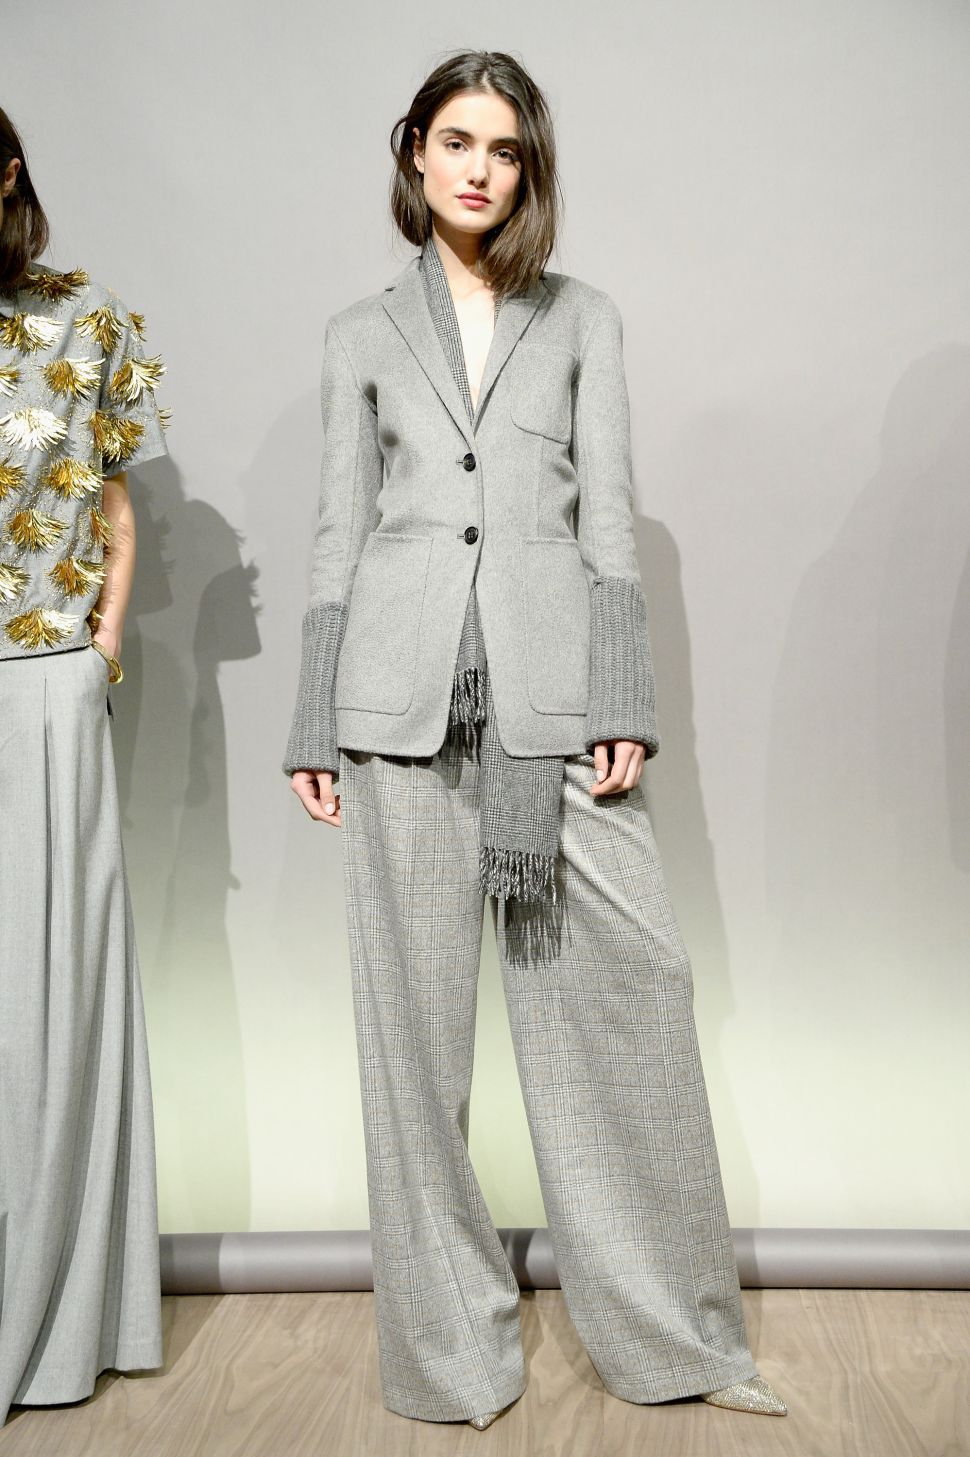 The Grey Flannel Suit Is Making a Huge Comeback for Women This Fall